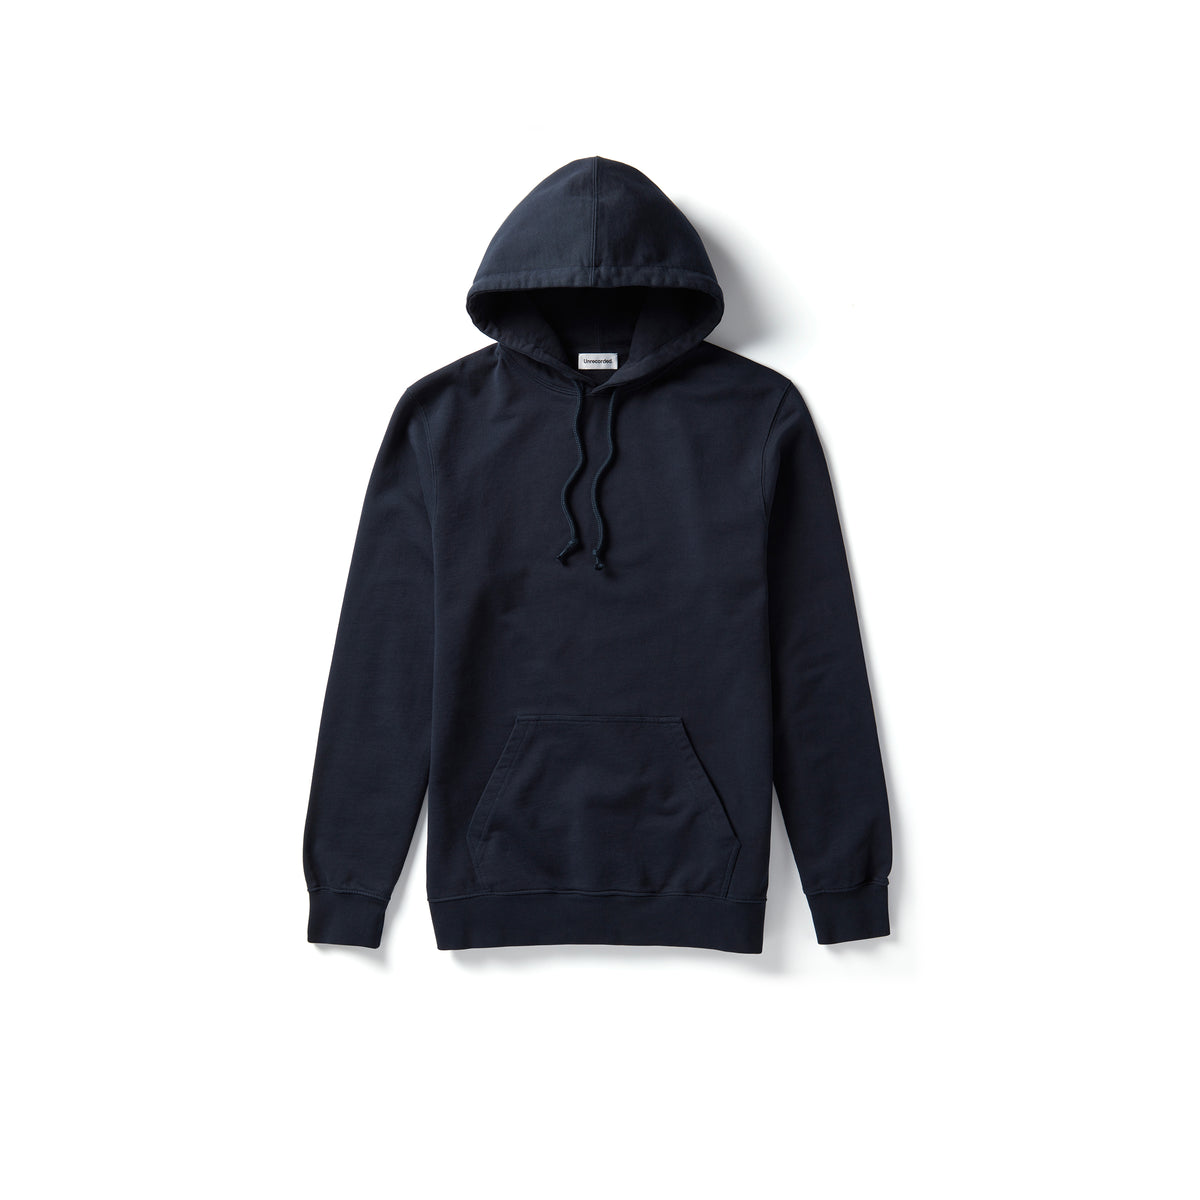 Hoodie Navy - Unrecorded